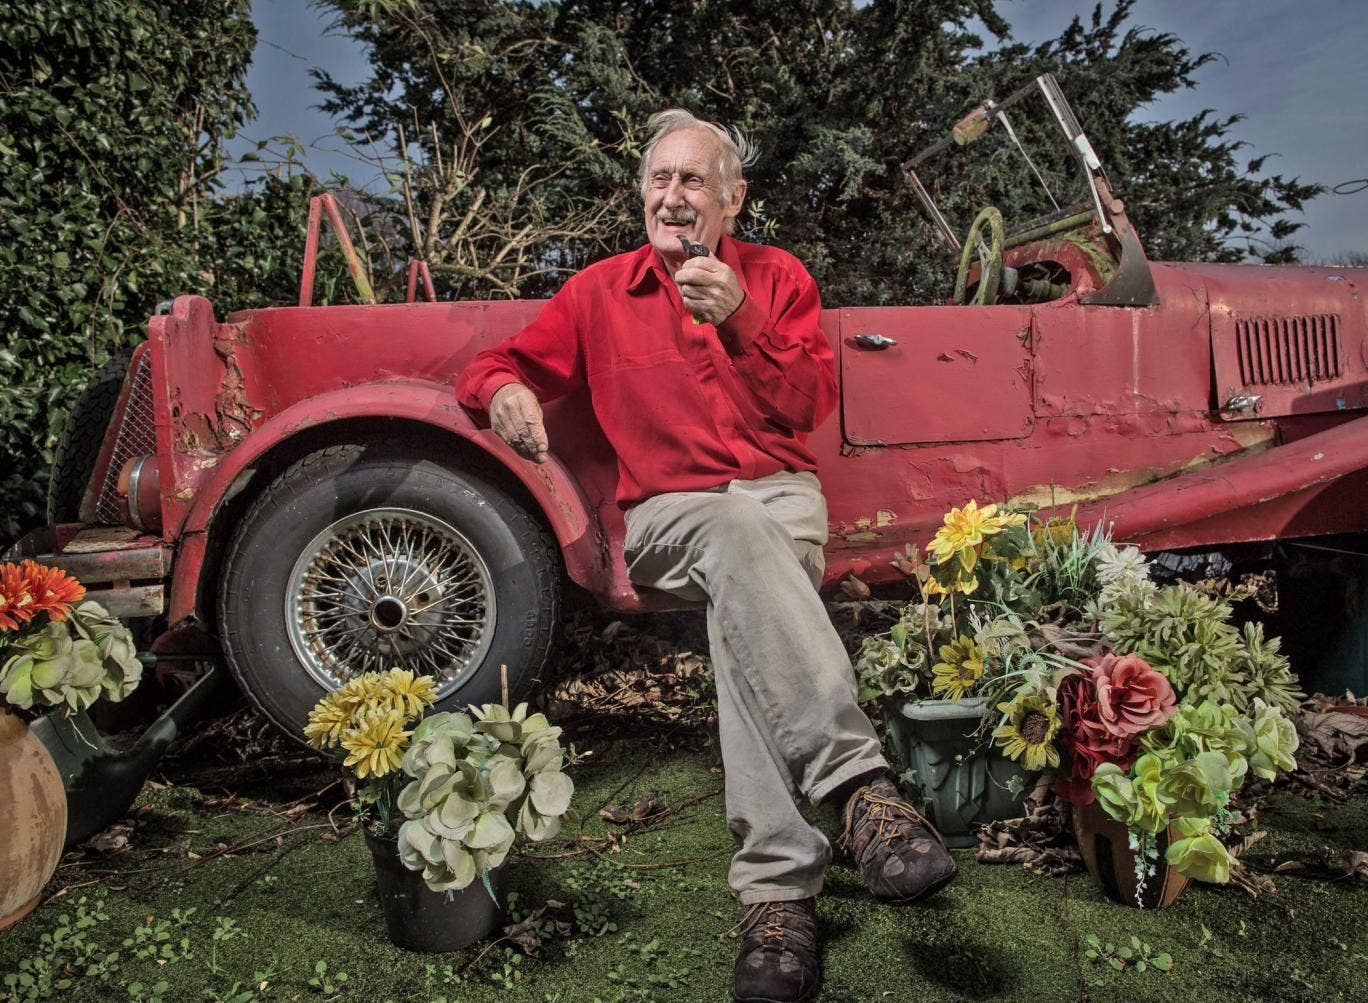 Driven eccentric: Trevor Baylis sits in his garden with his self-modified Ford Cortina, which has about six inches on the clock